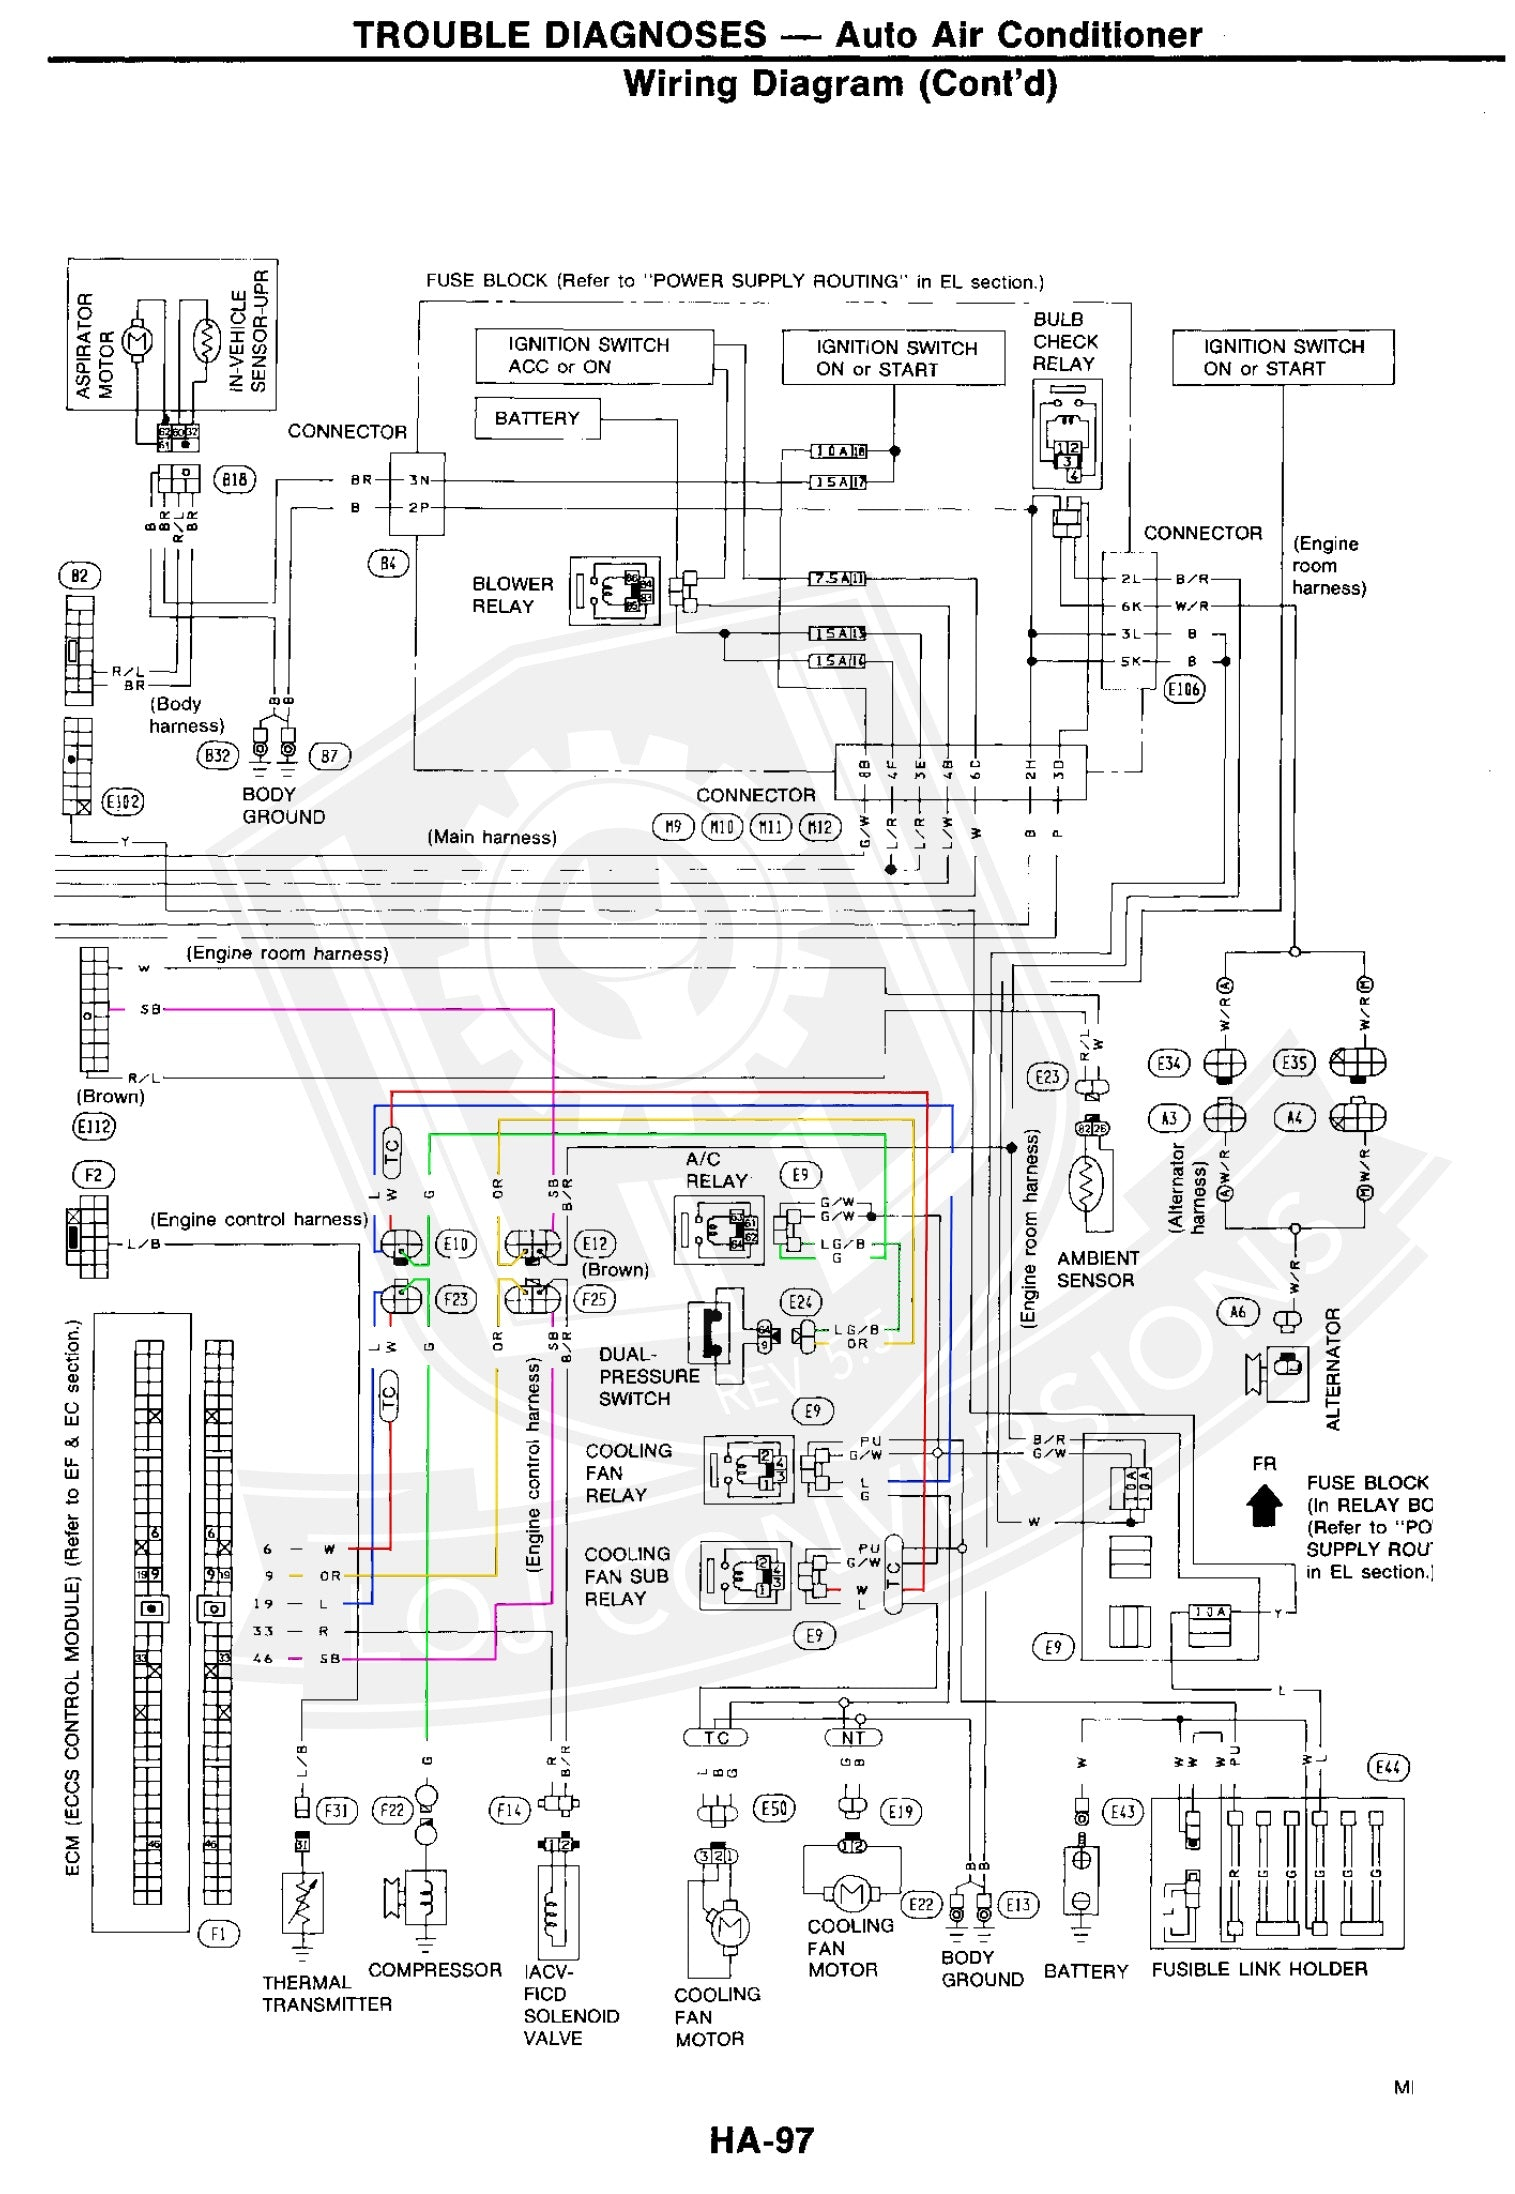 2000 xterra ecm wiring diagram wiring the ac in a 300zx engine conversion     loj conversions  wiring the ac in a 300zx engine